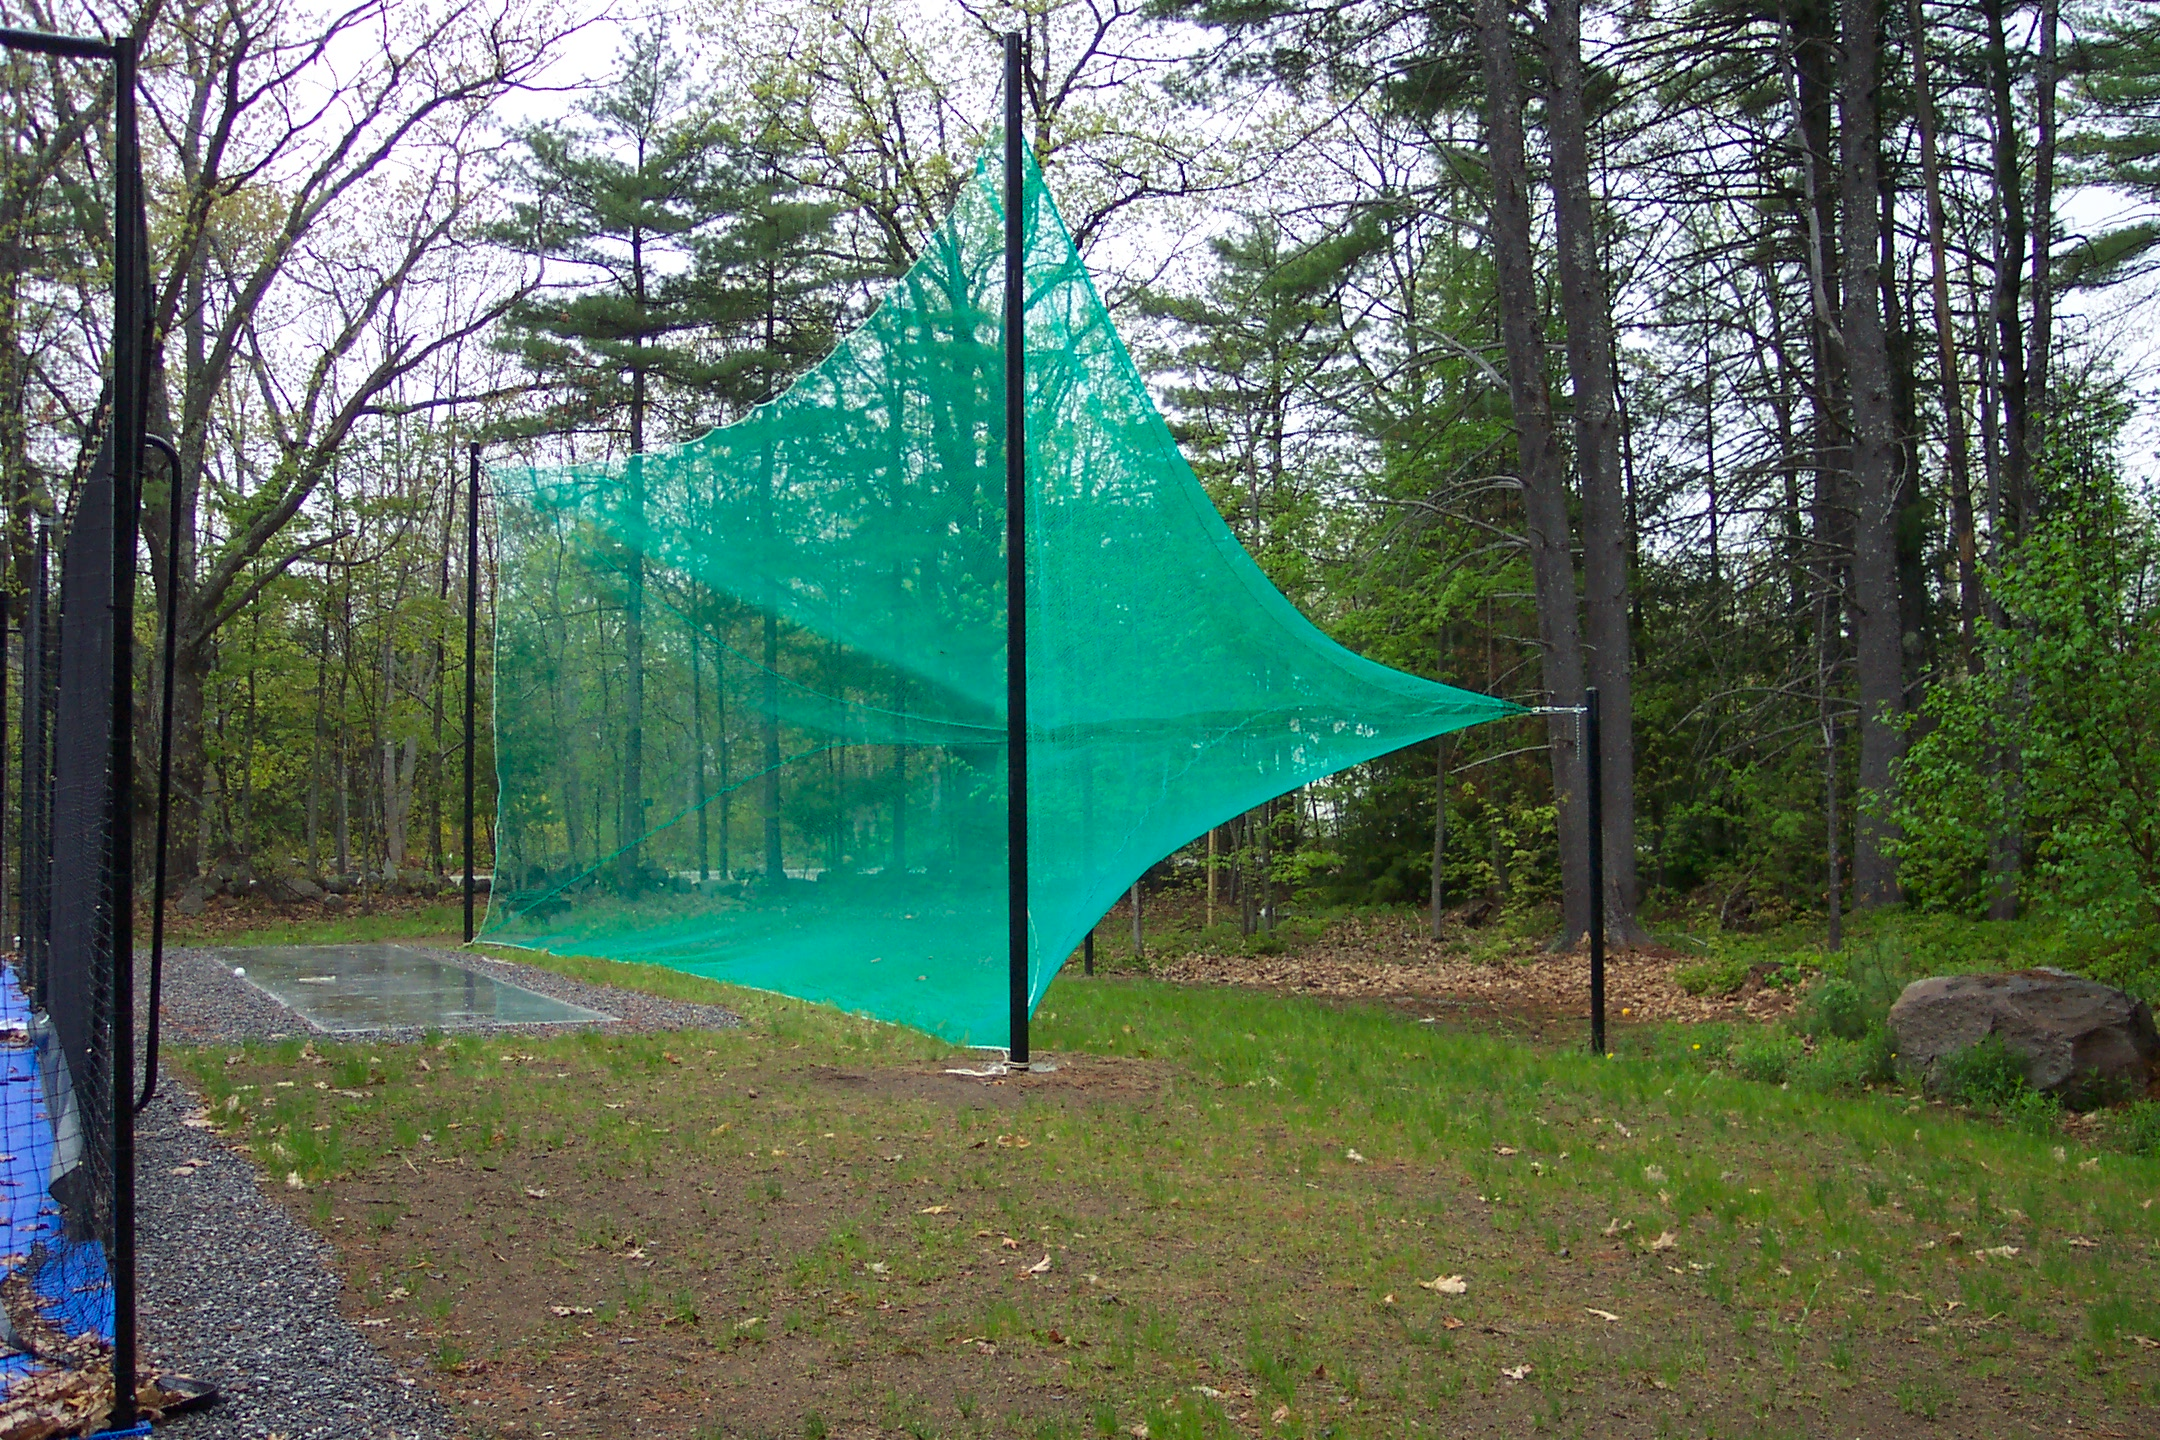 Backyard Driving Range vermont custom nets golf - vermont custom nets